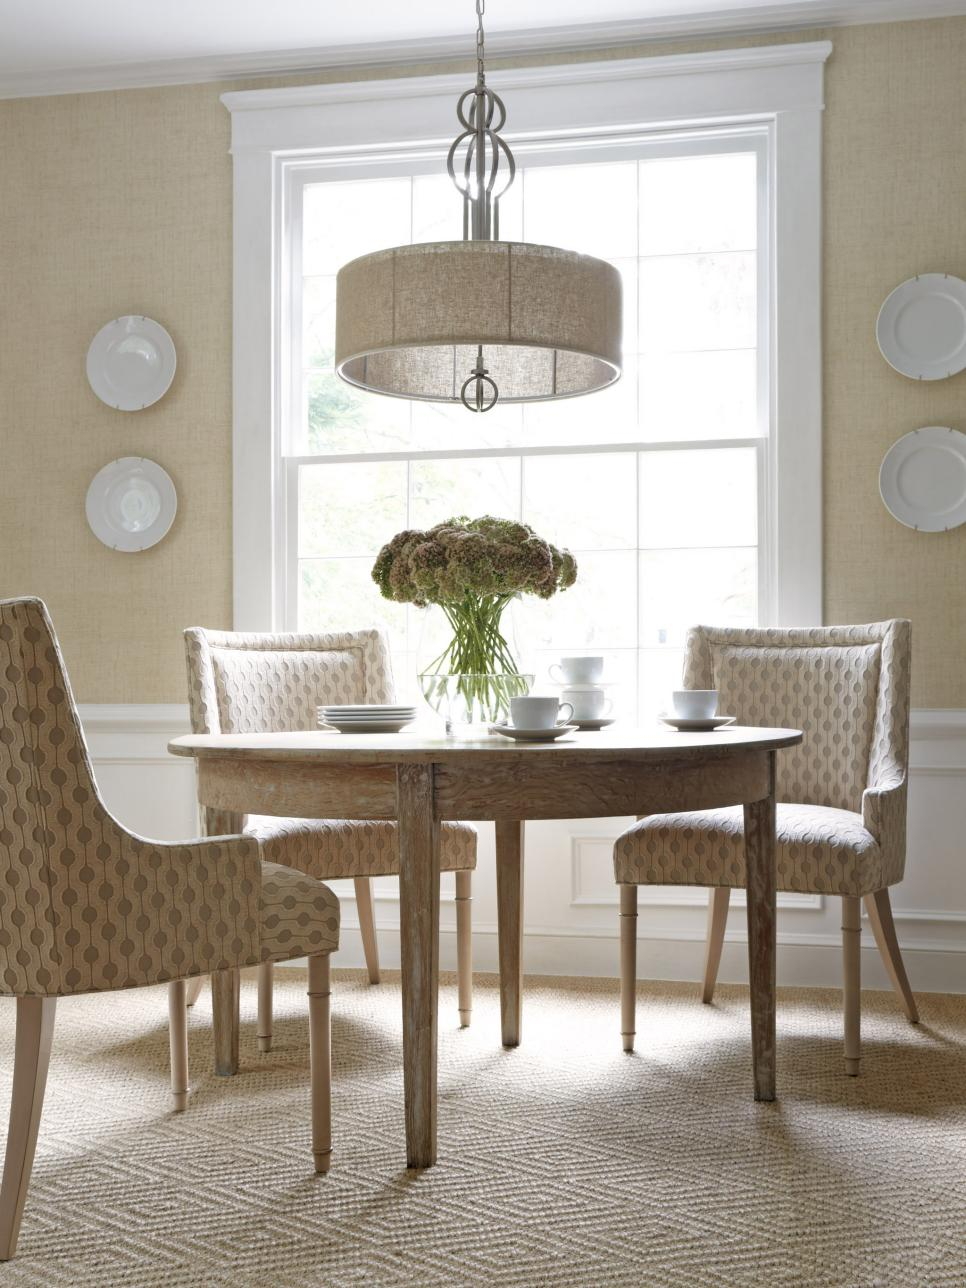 25 biggest decorating mistakes and solutions hgtv for Dining room 101 heswall